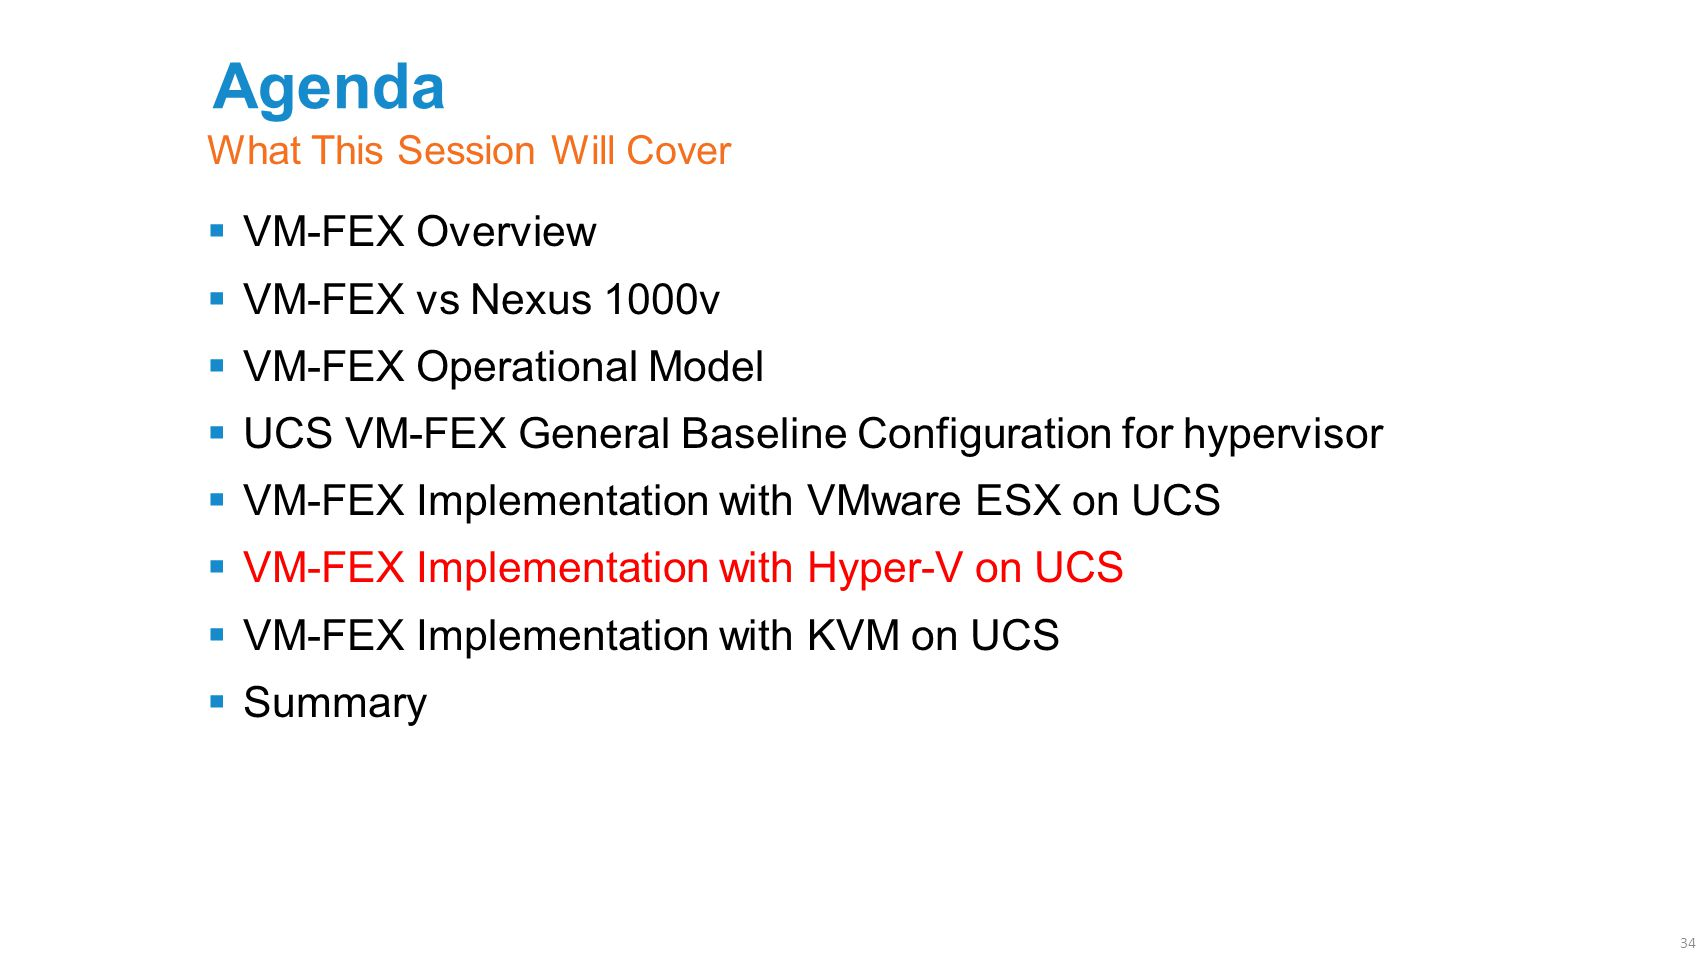 Agenda  VM-FEX Overview  VM-FEX vs Nexus 1000v  VM-FEX Operational Model  UCS VM-FEX General Baseline Configuration for hypervisor  VM-FEX Implementation with VMware ESX on UCS  VM-FEX Implementation with Hyper-V on UCS  VM-FEX Implementation with KVM on UCS  Summary What This Session Will Cover 34